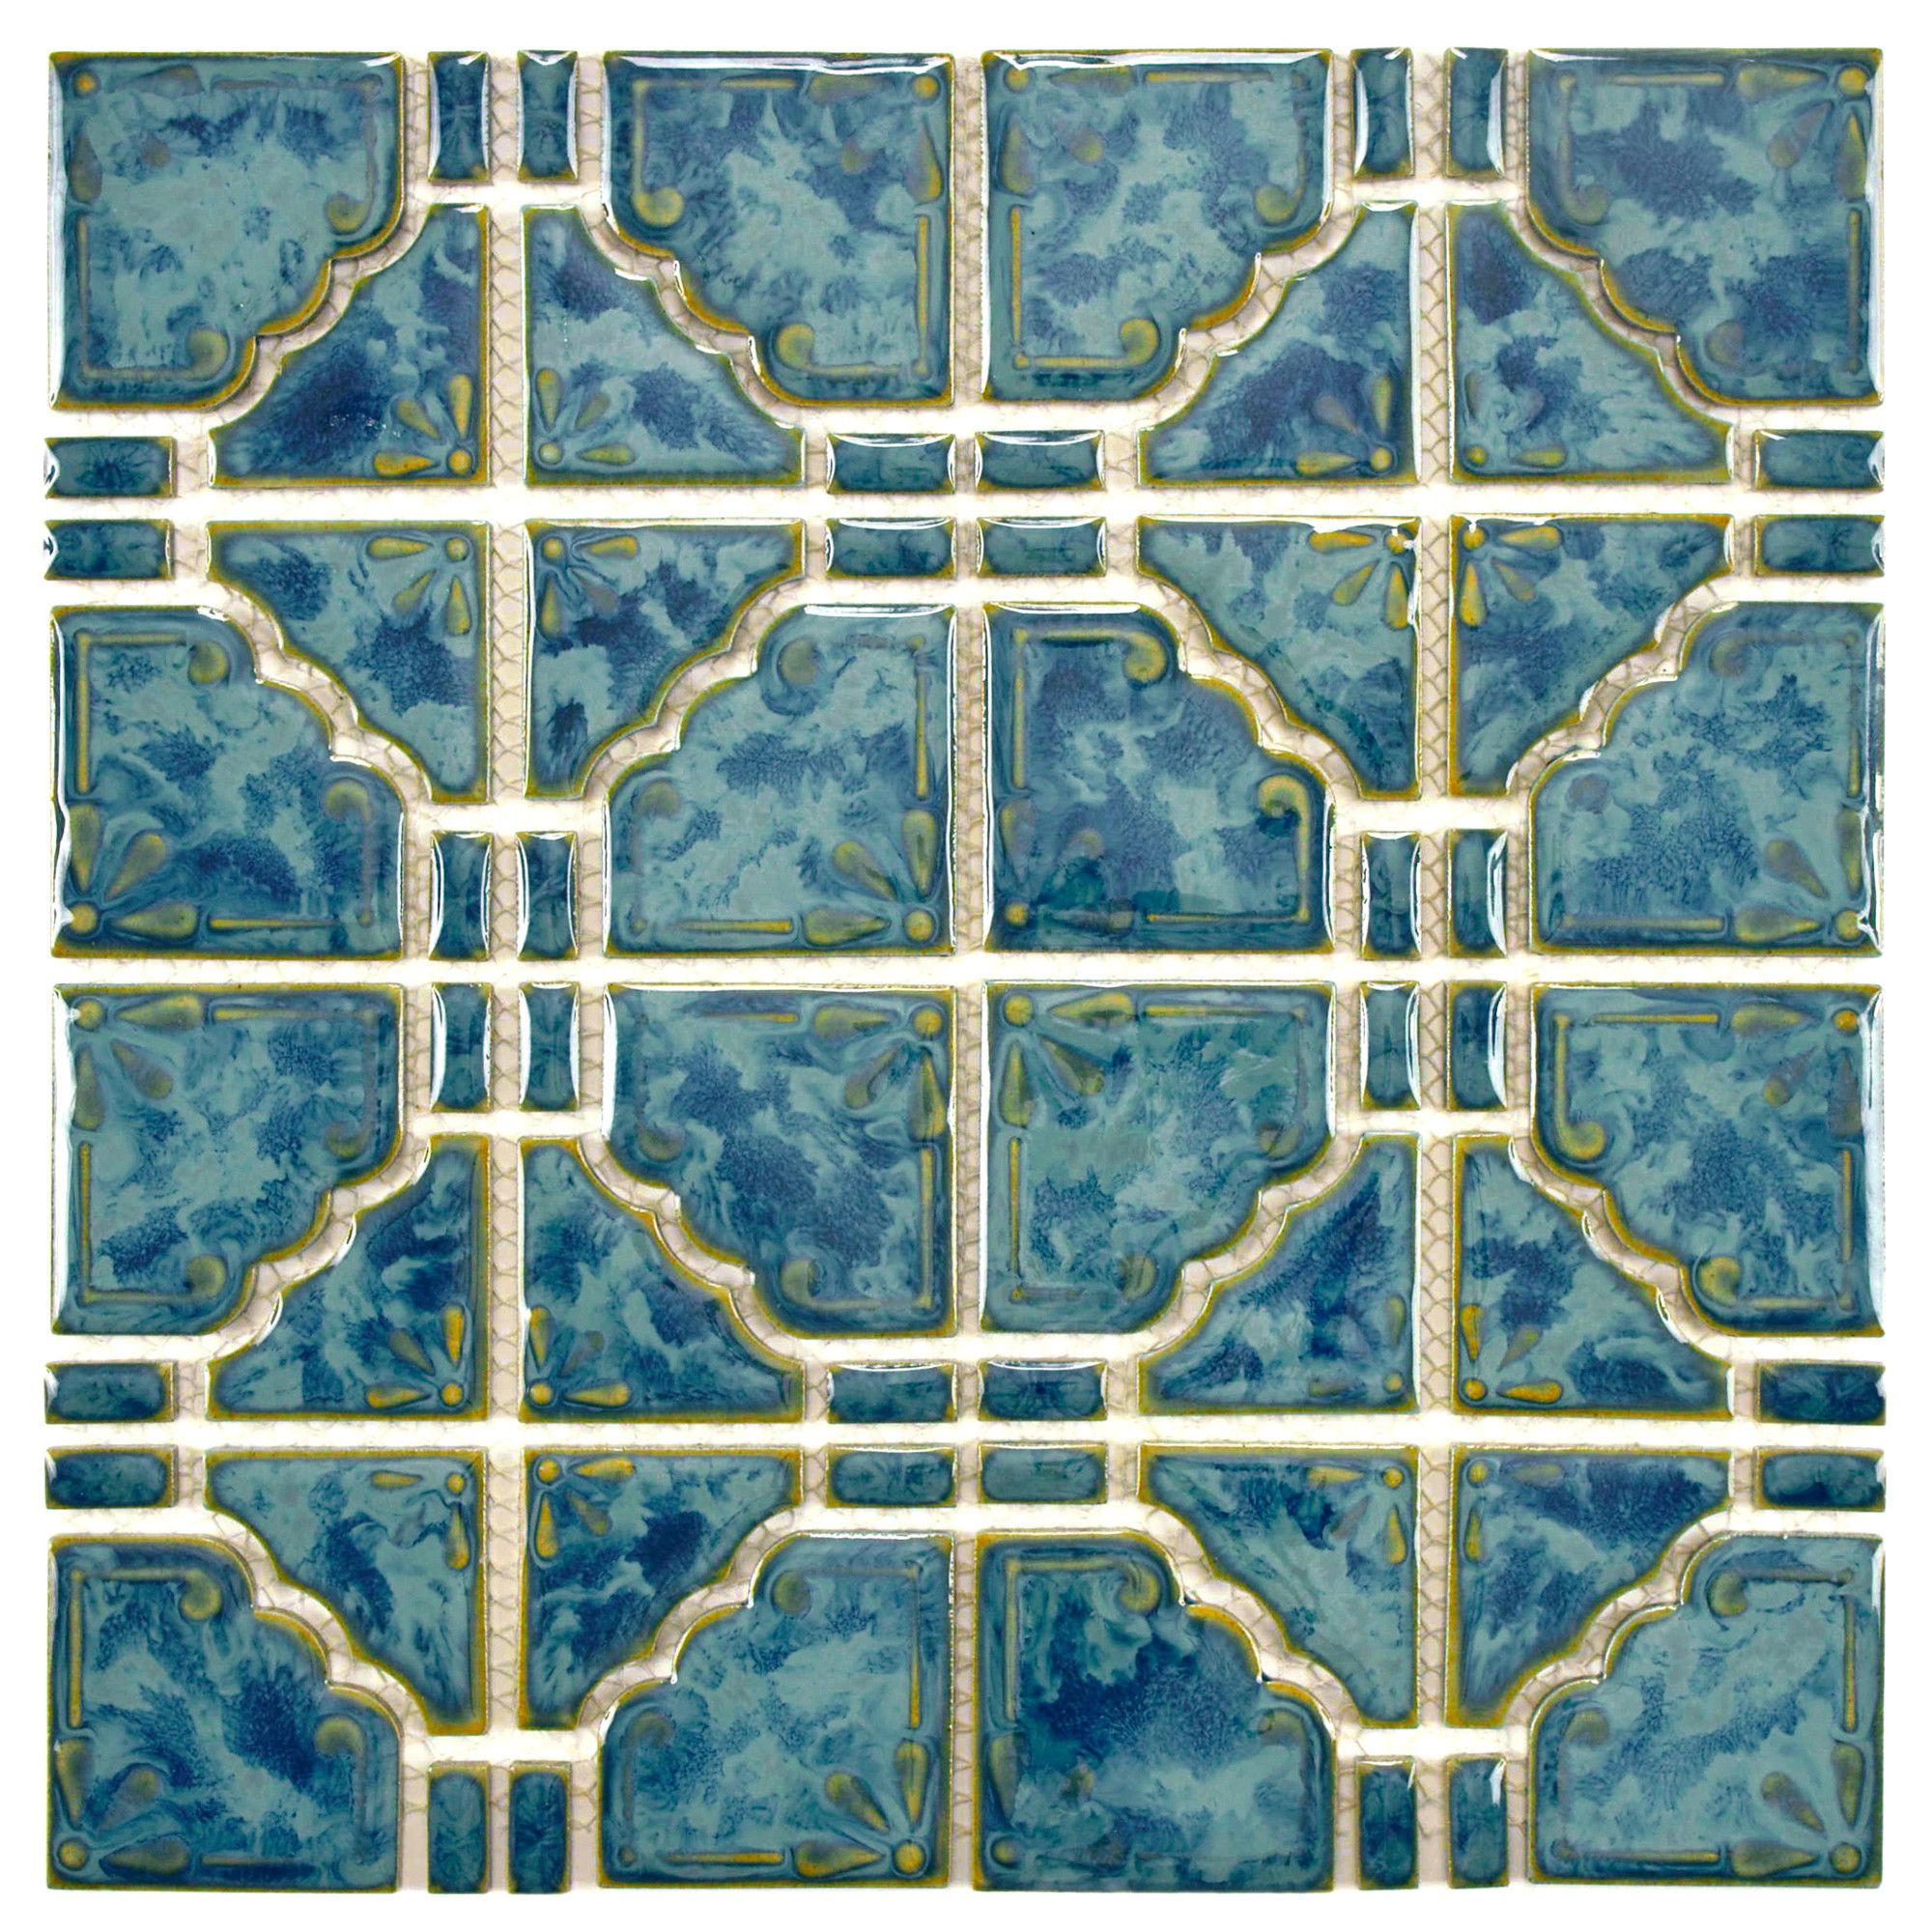 Moonlight 3 X 3 Porcelain Grid Mosaic Wall Floor Tile Porcelain Mosaic Porcelain Mosaic Tile Mosaic Flooring